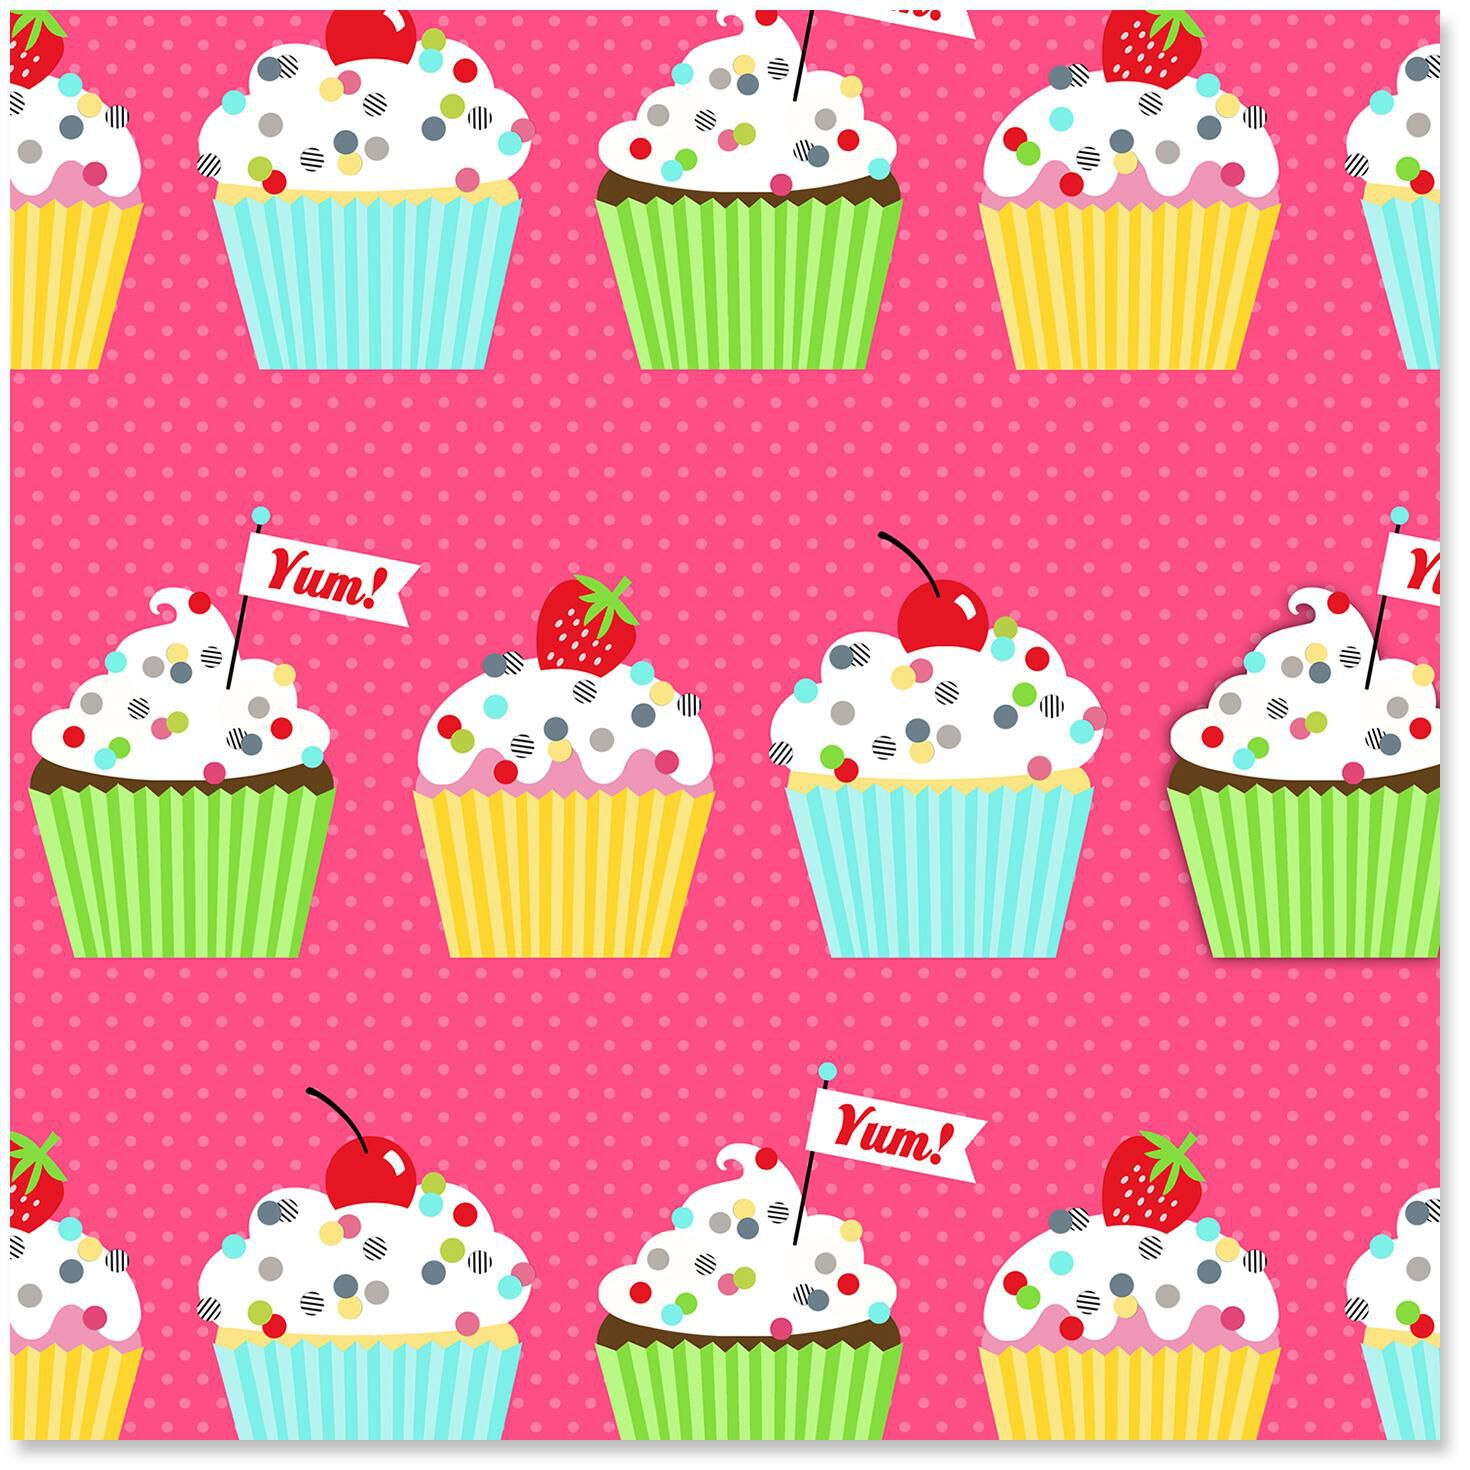 Colorful Cupcakes Wrapping Paper Roll 27 Sq Ft Wrapping Paper